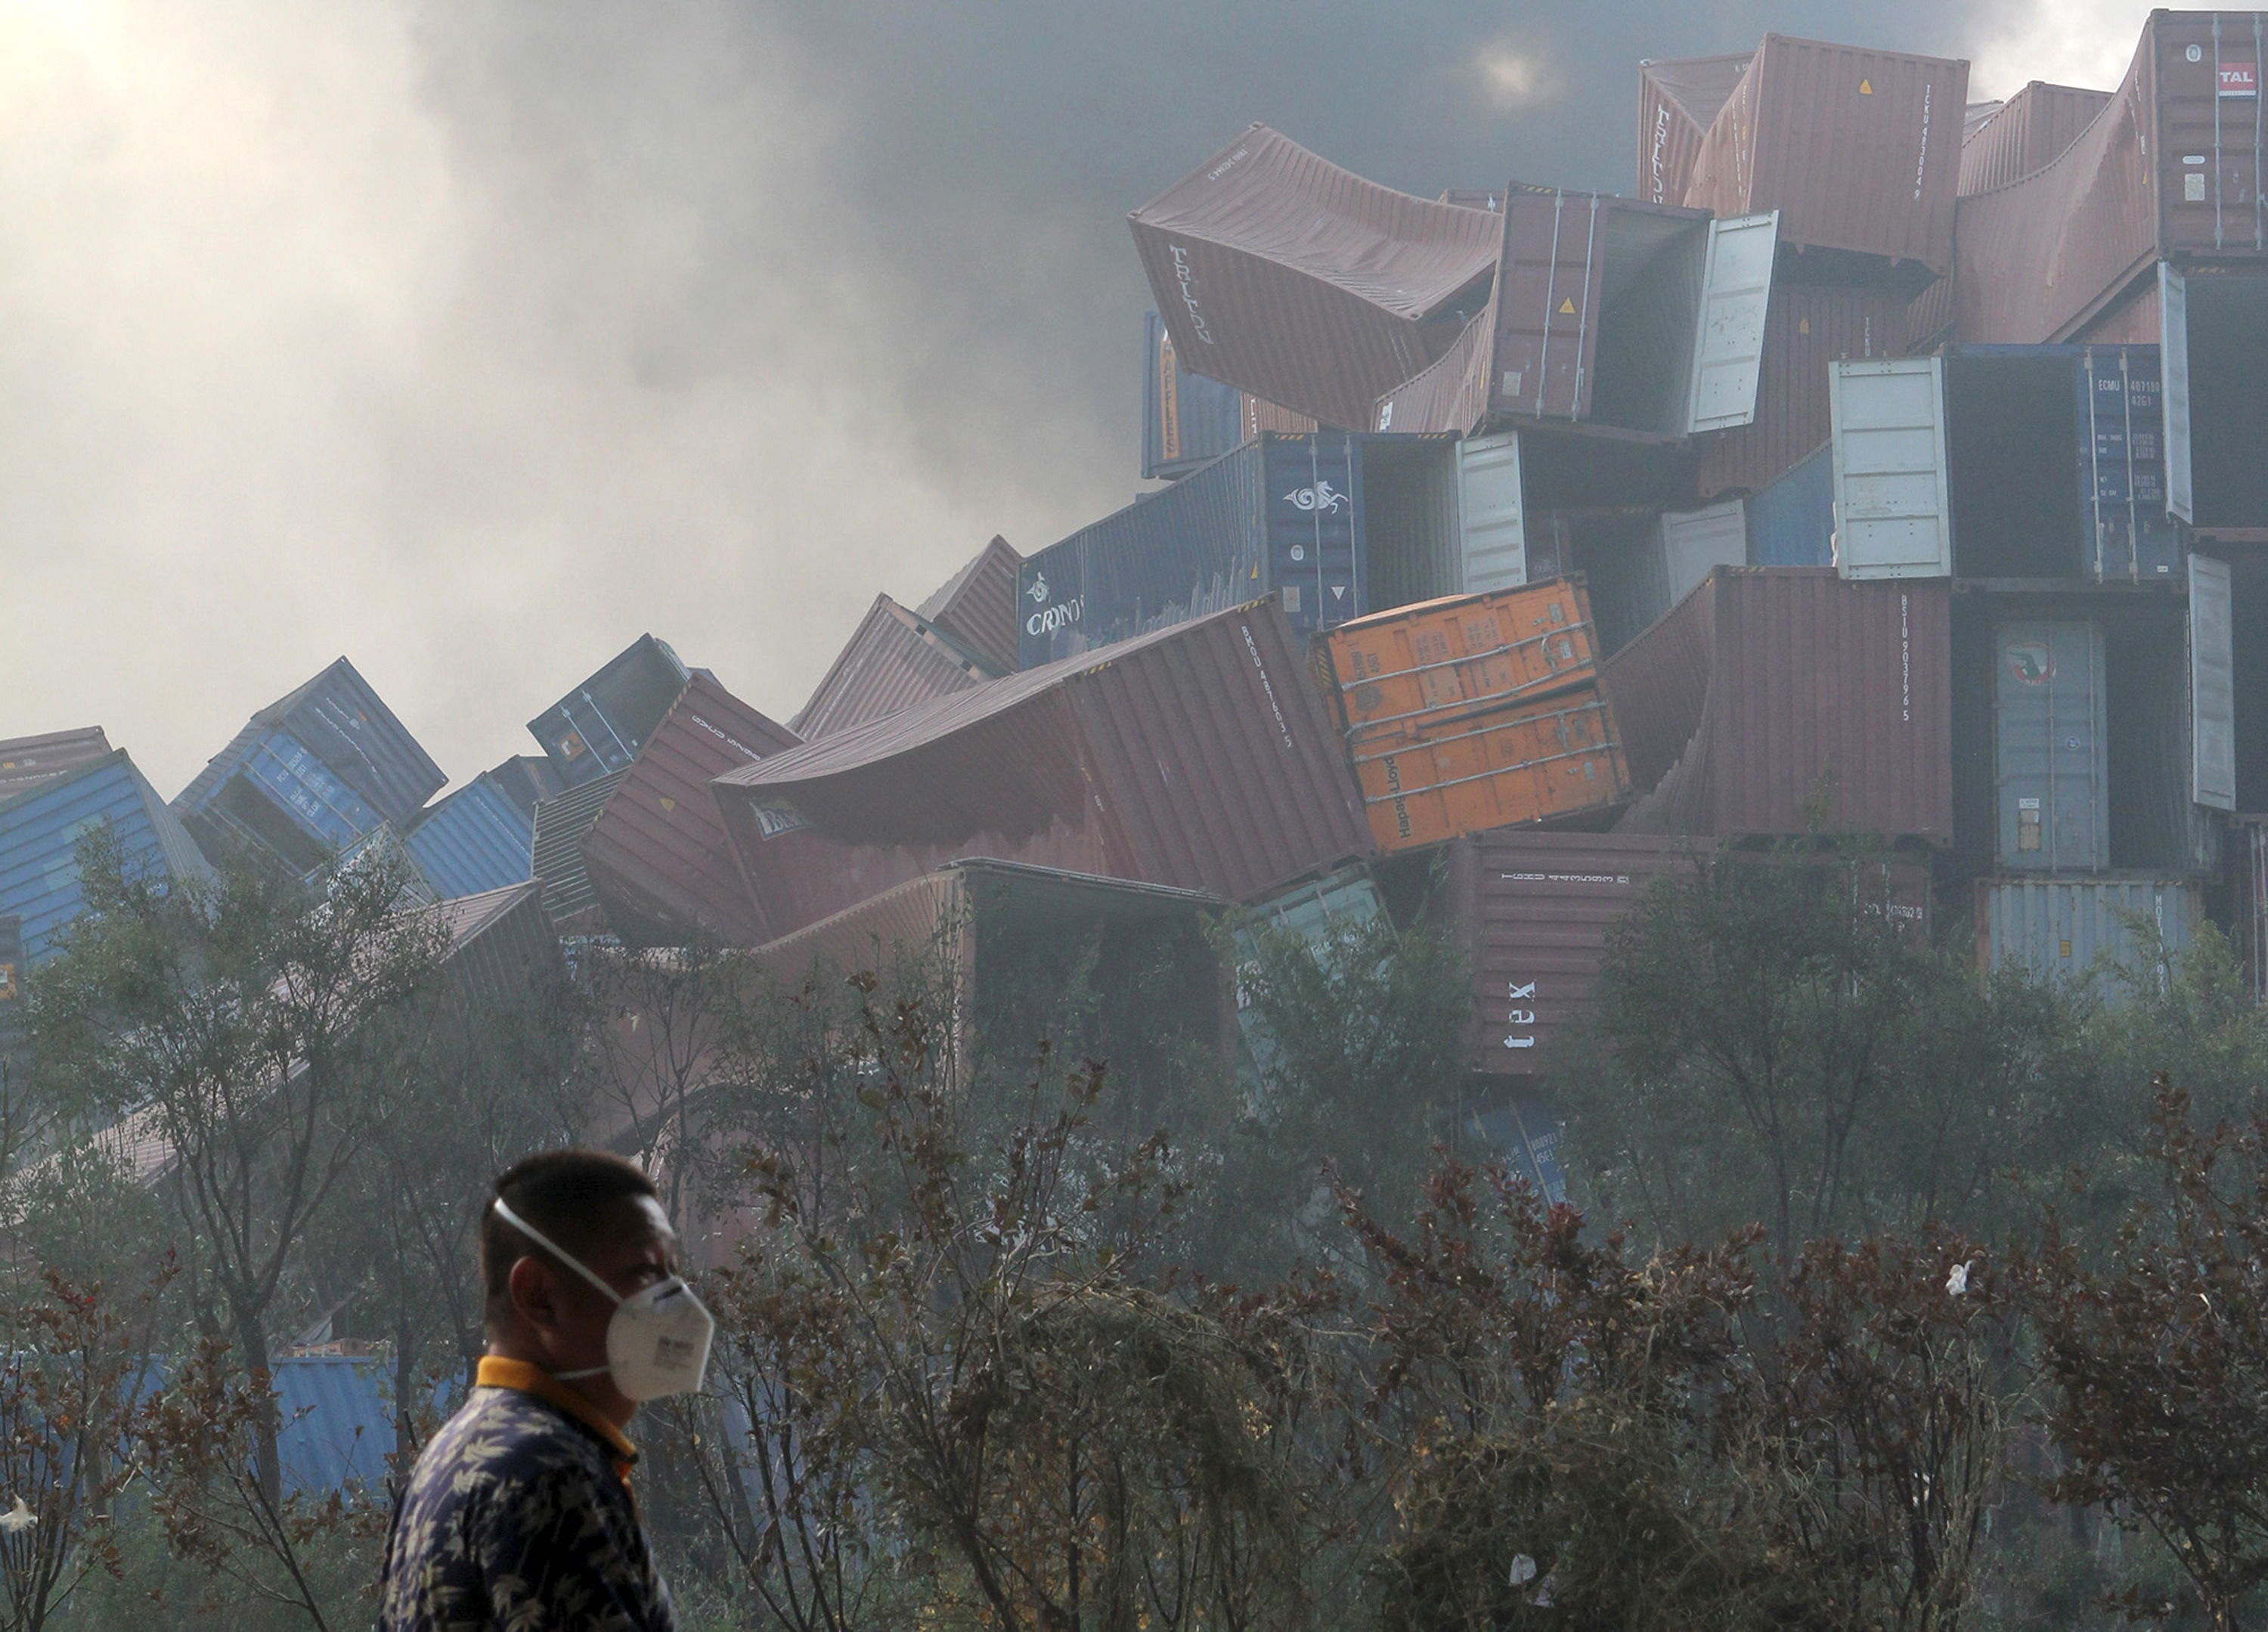 A man wearing a mask walks past overturned shipping containers near the scene of the explosions. Photo by Reuters